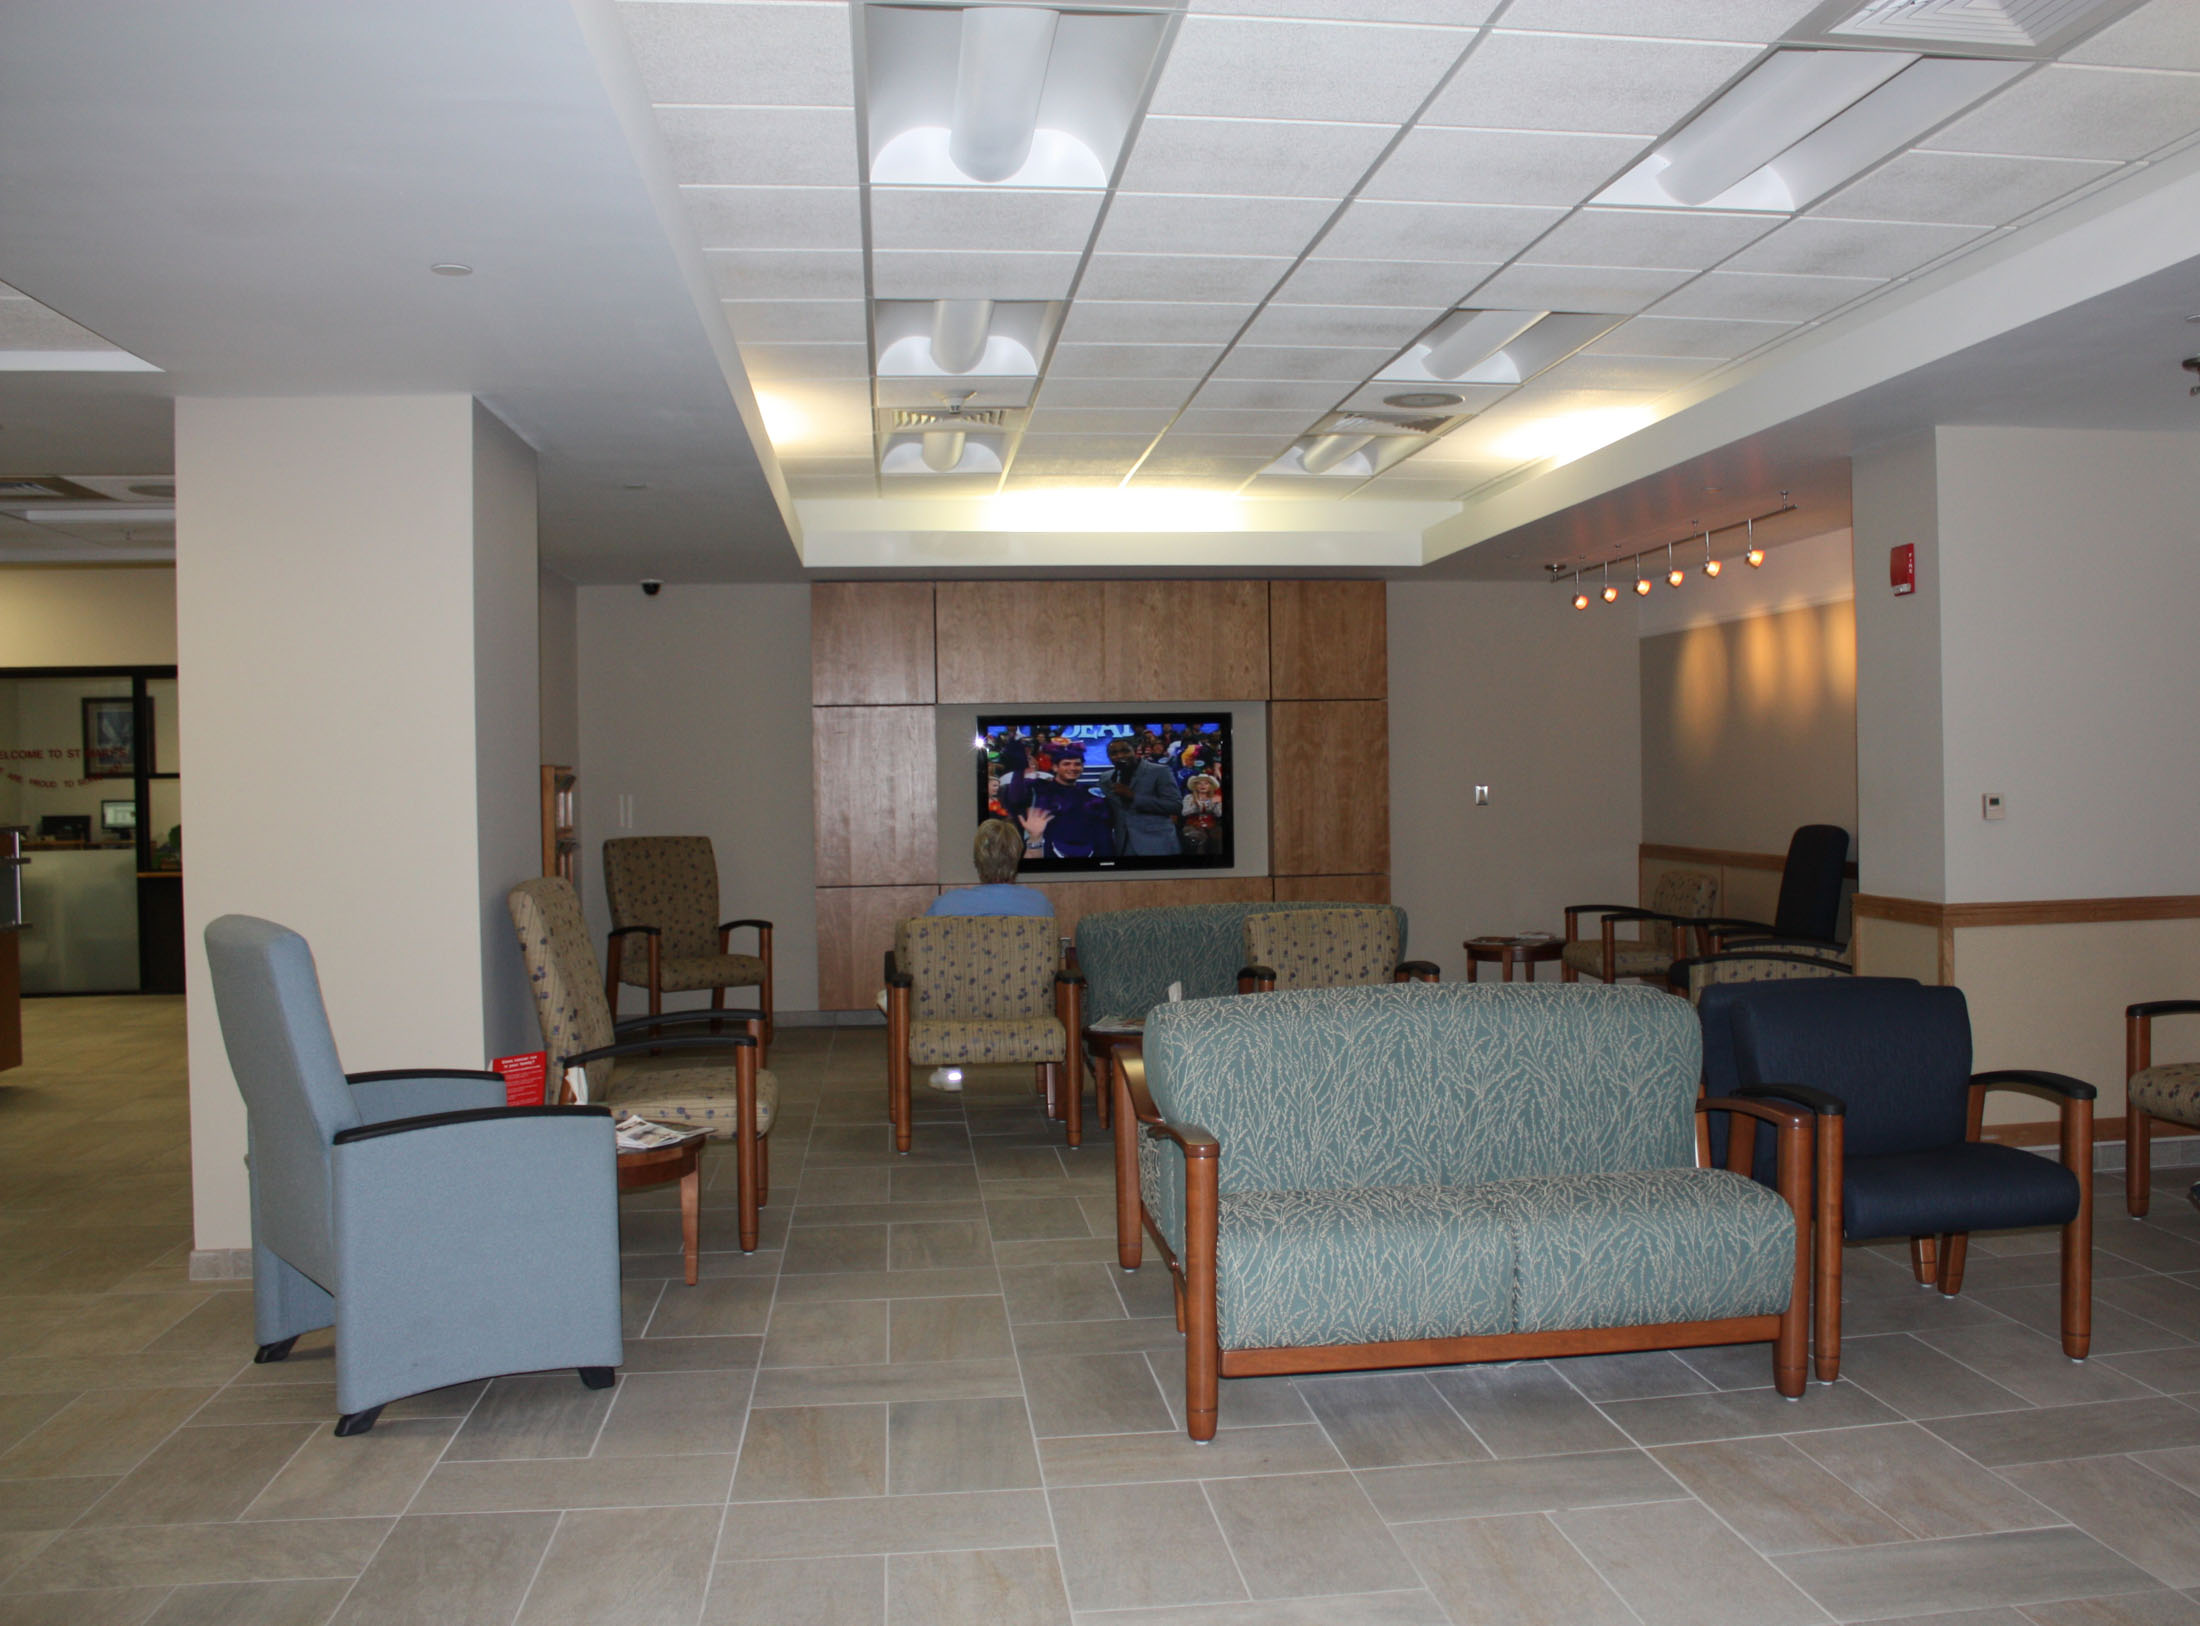 St. Mary\'s Regional Medical Center | DeBlois Electric